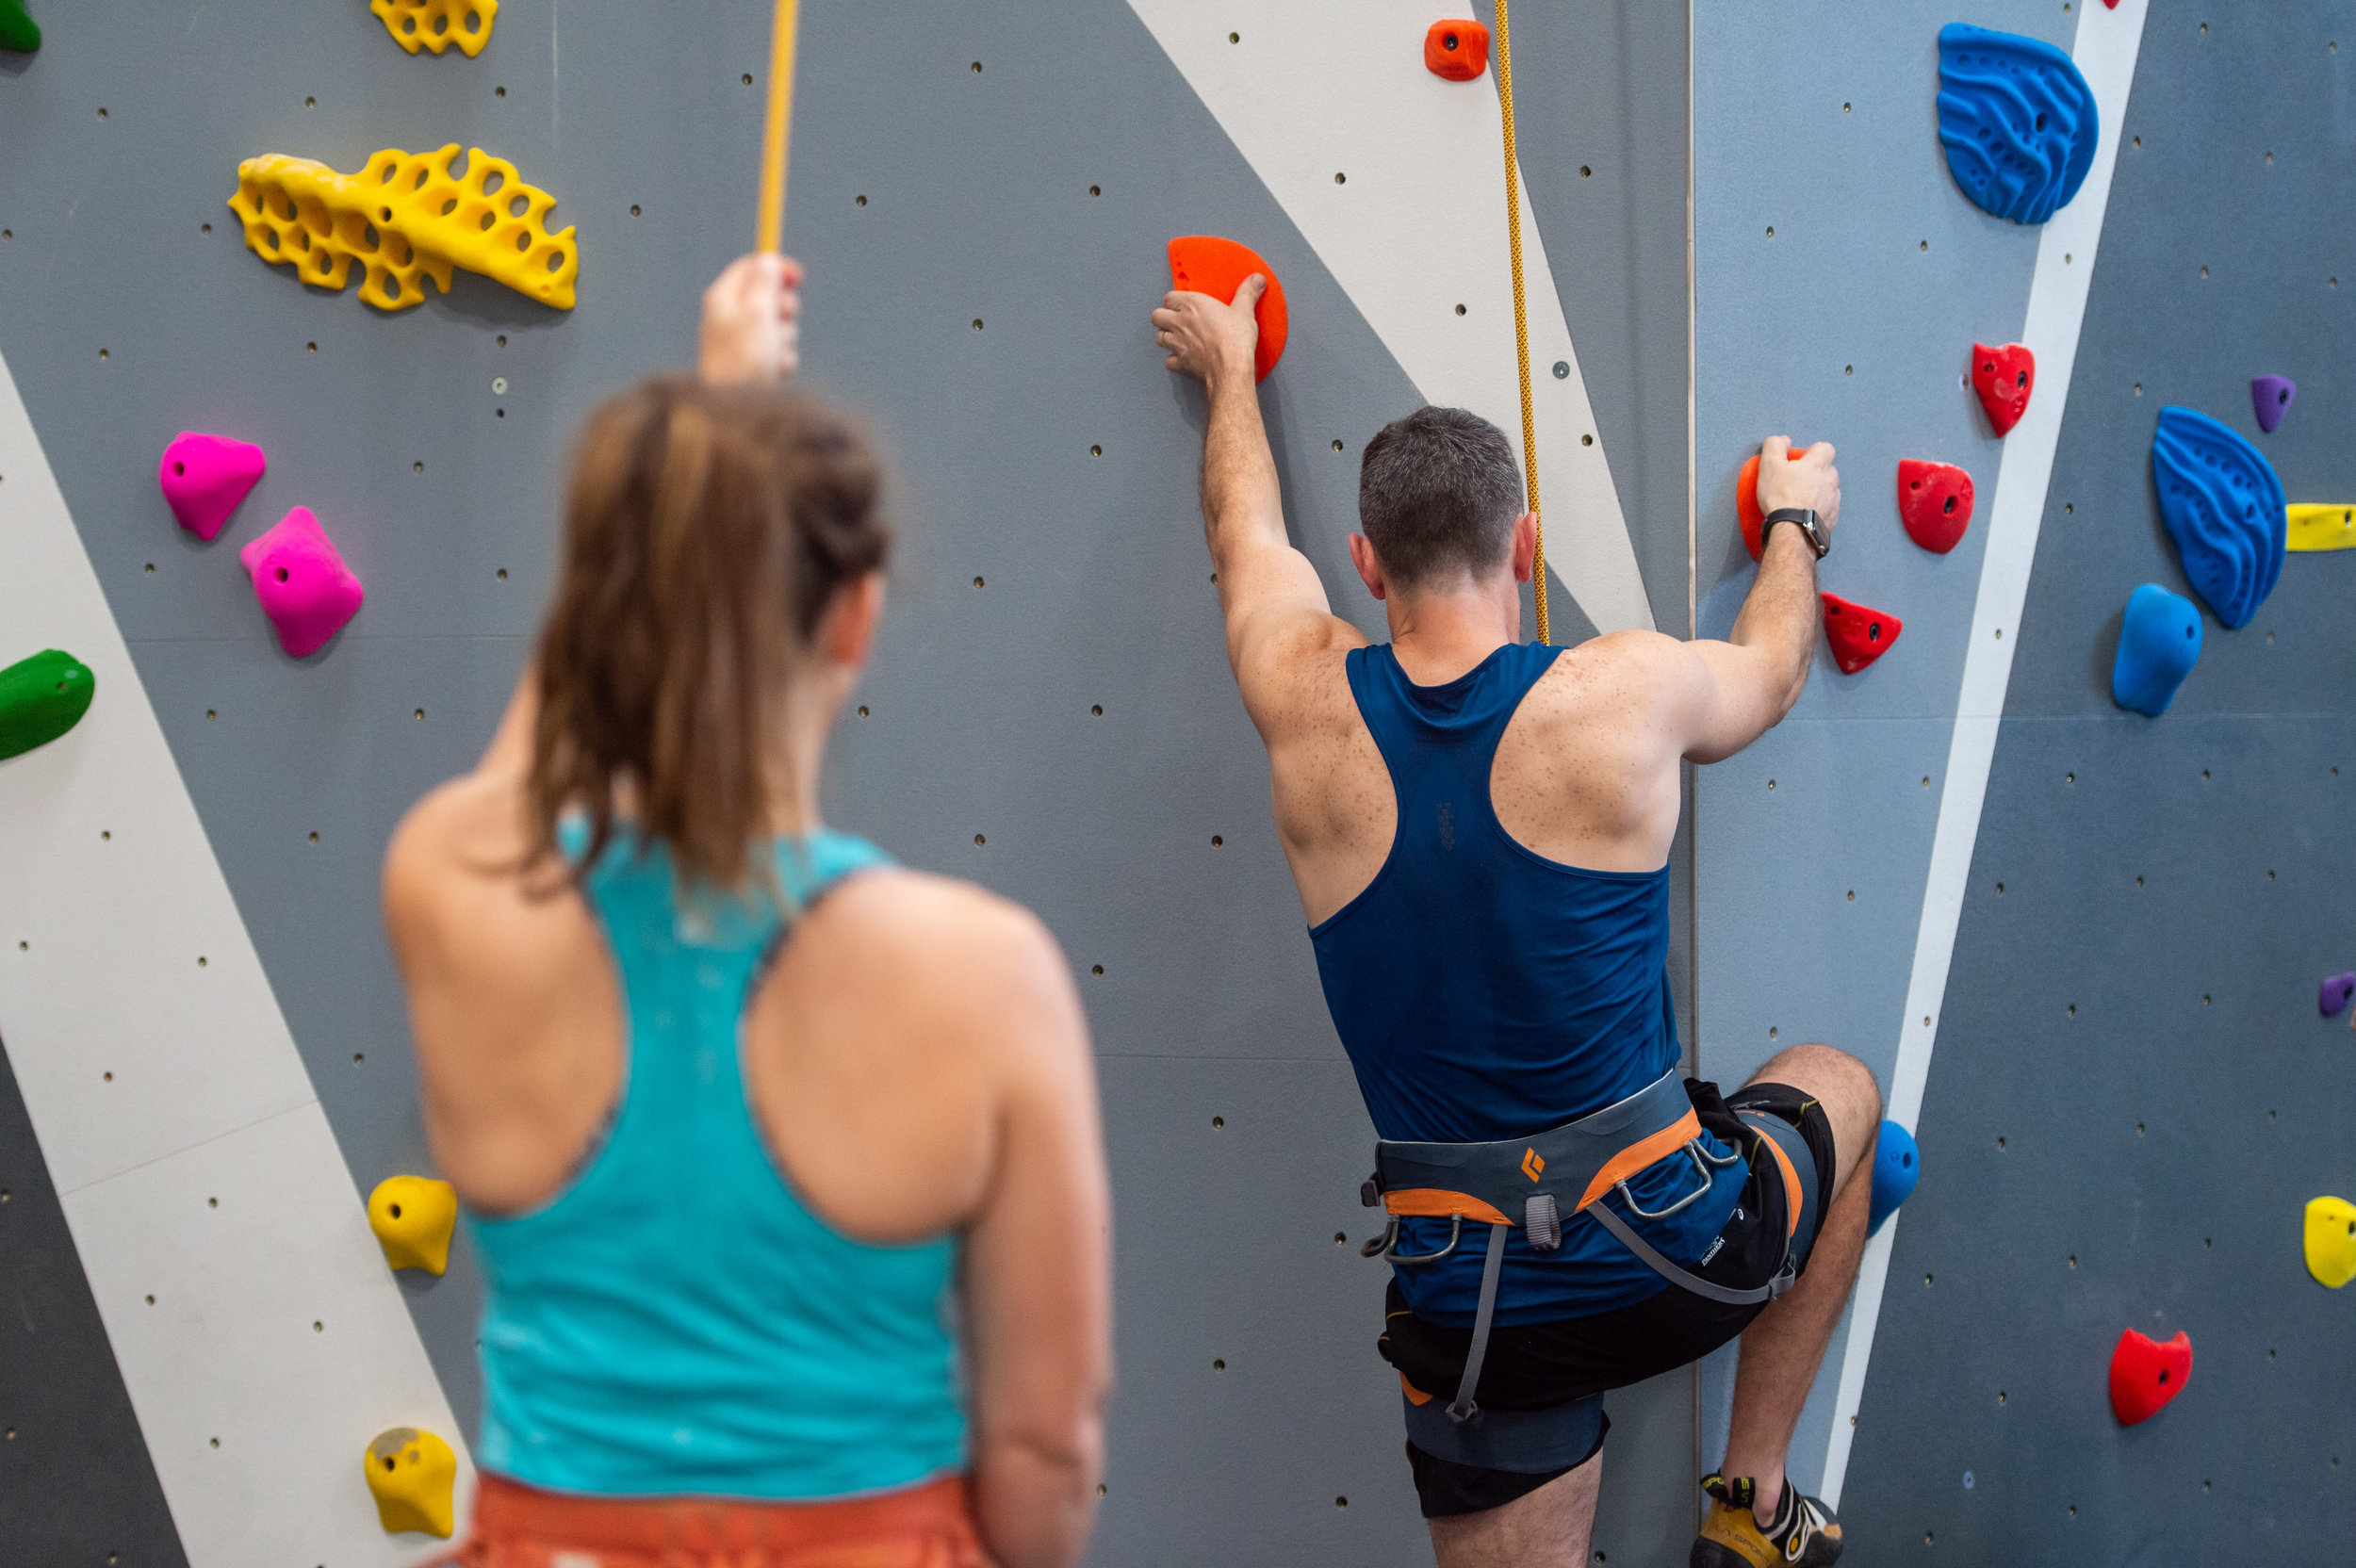 Beginner Clinic - Tuesday nights, 6-7:30pm. Run in a 4 week block. In this small group lesson our coach will run you through all the basic climbing techniques needed to have you moving like a rock star in no time!Bookings are essential. Check next start date HERE